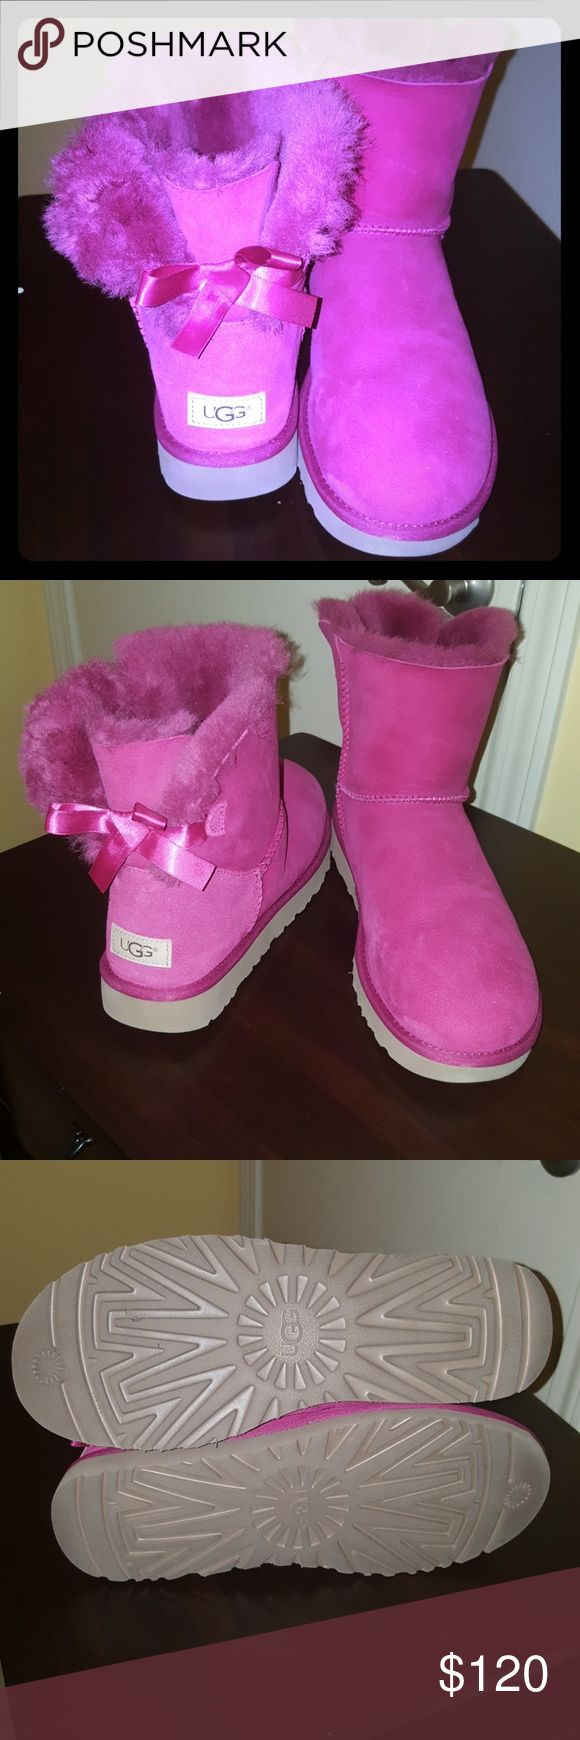 HOT PINK UGGS SIZE 11 GREAT CONDITION! Hot pink ugg boots with bows on the back. Worn once!  Great condition! No weathering on the shoes  or soles UGG Shoes Ankle Boots & Booties